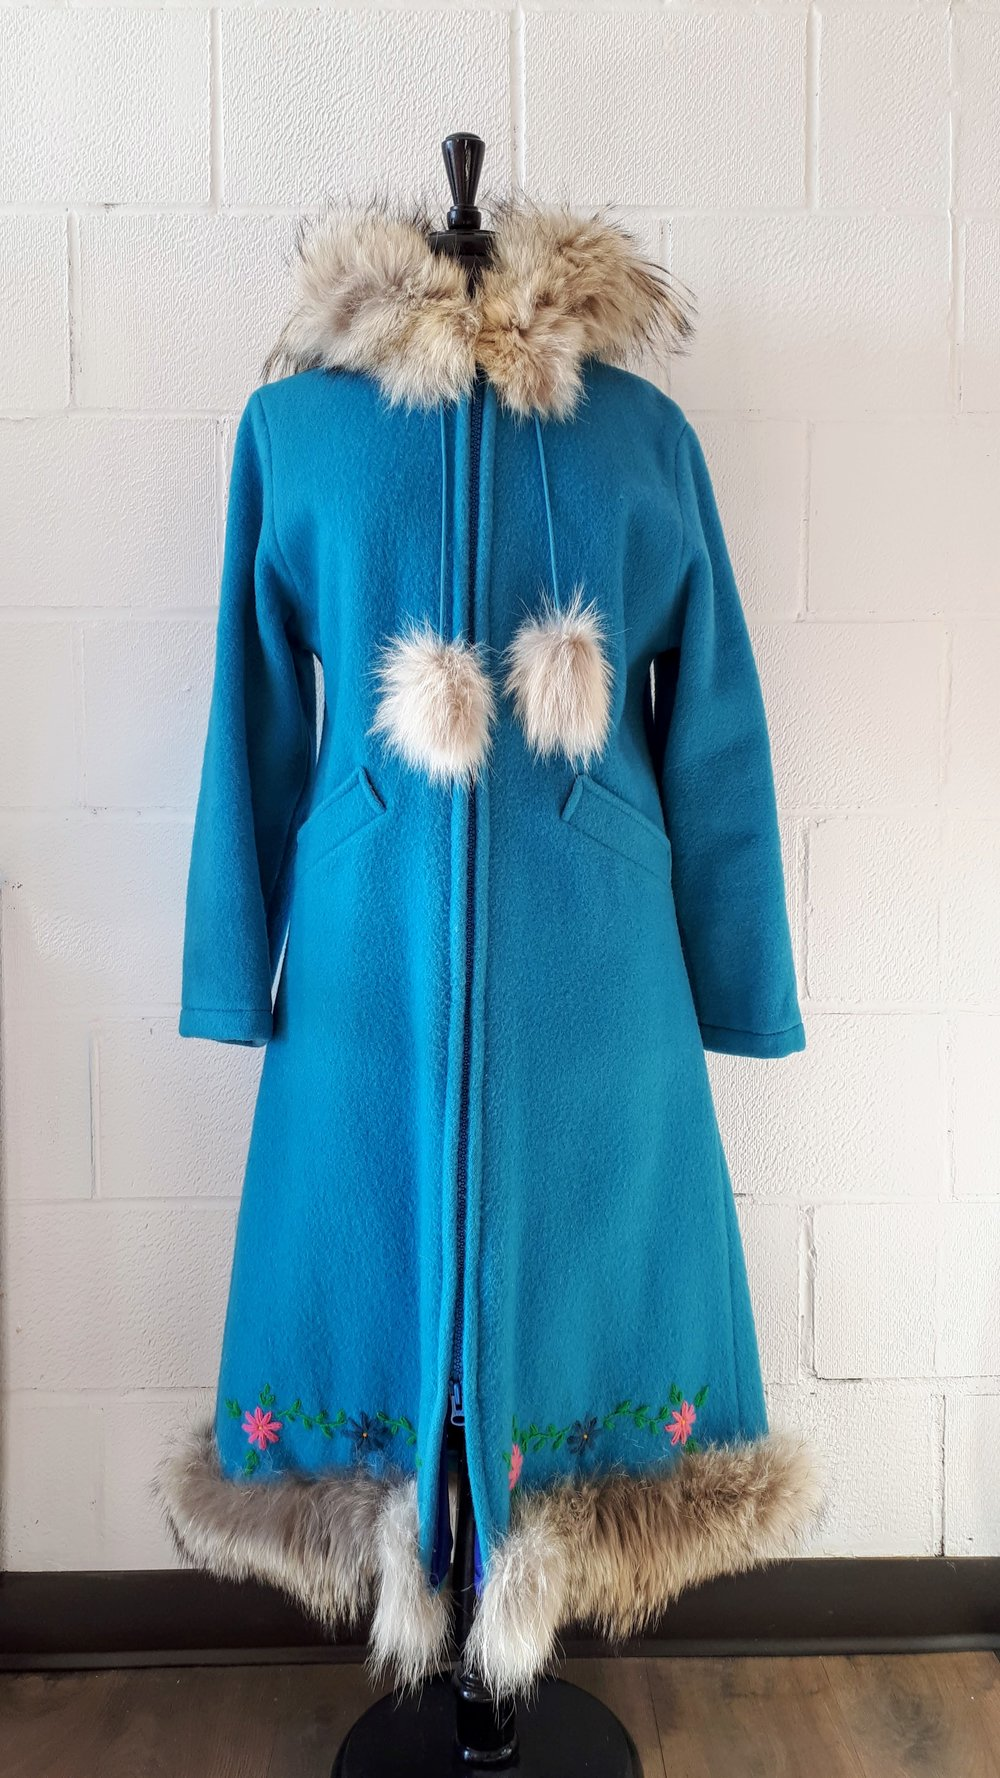 Hand made coat; Size S/M, $195